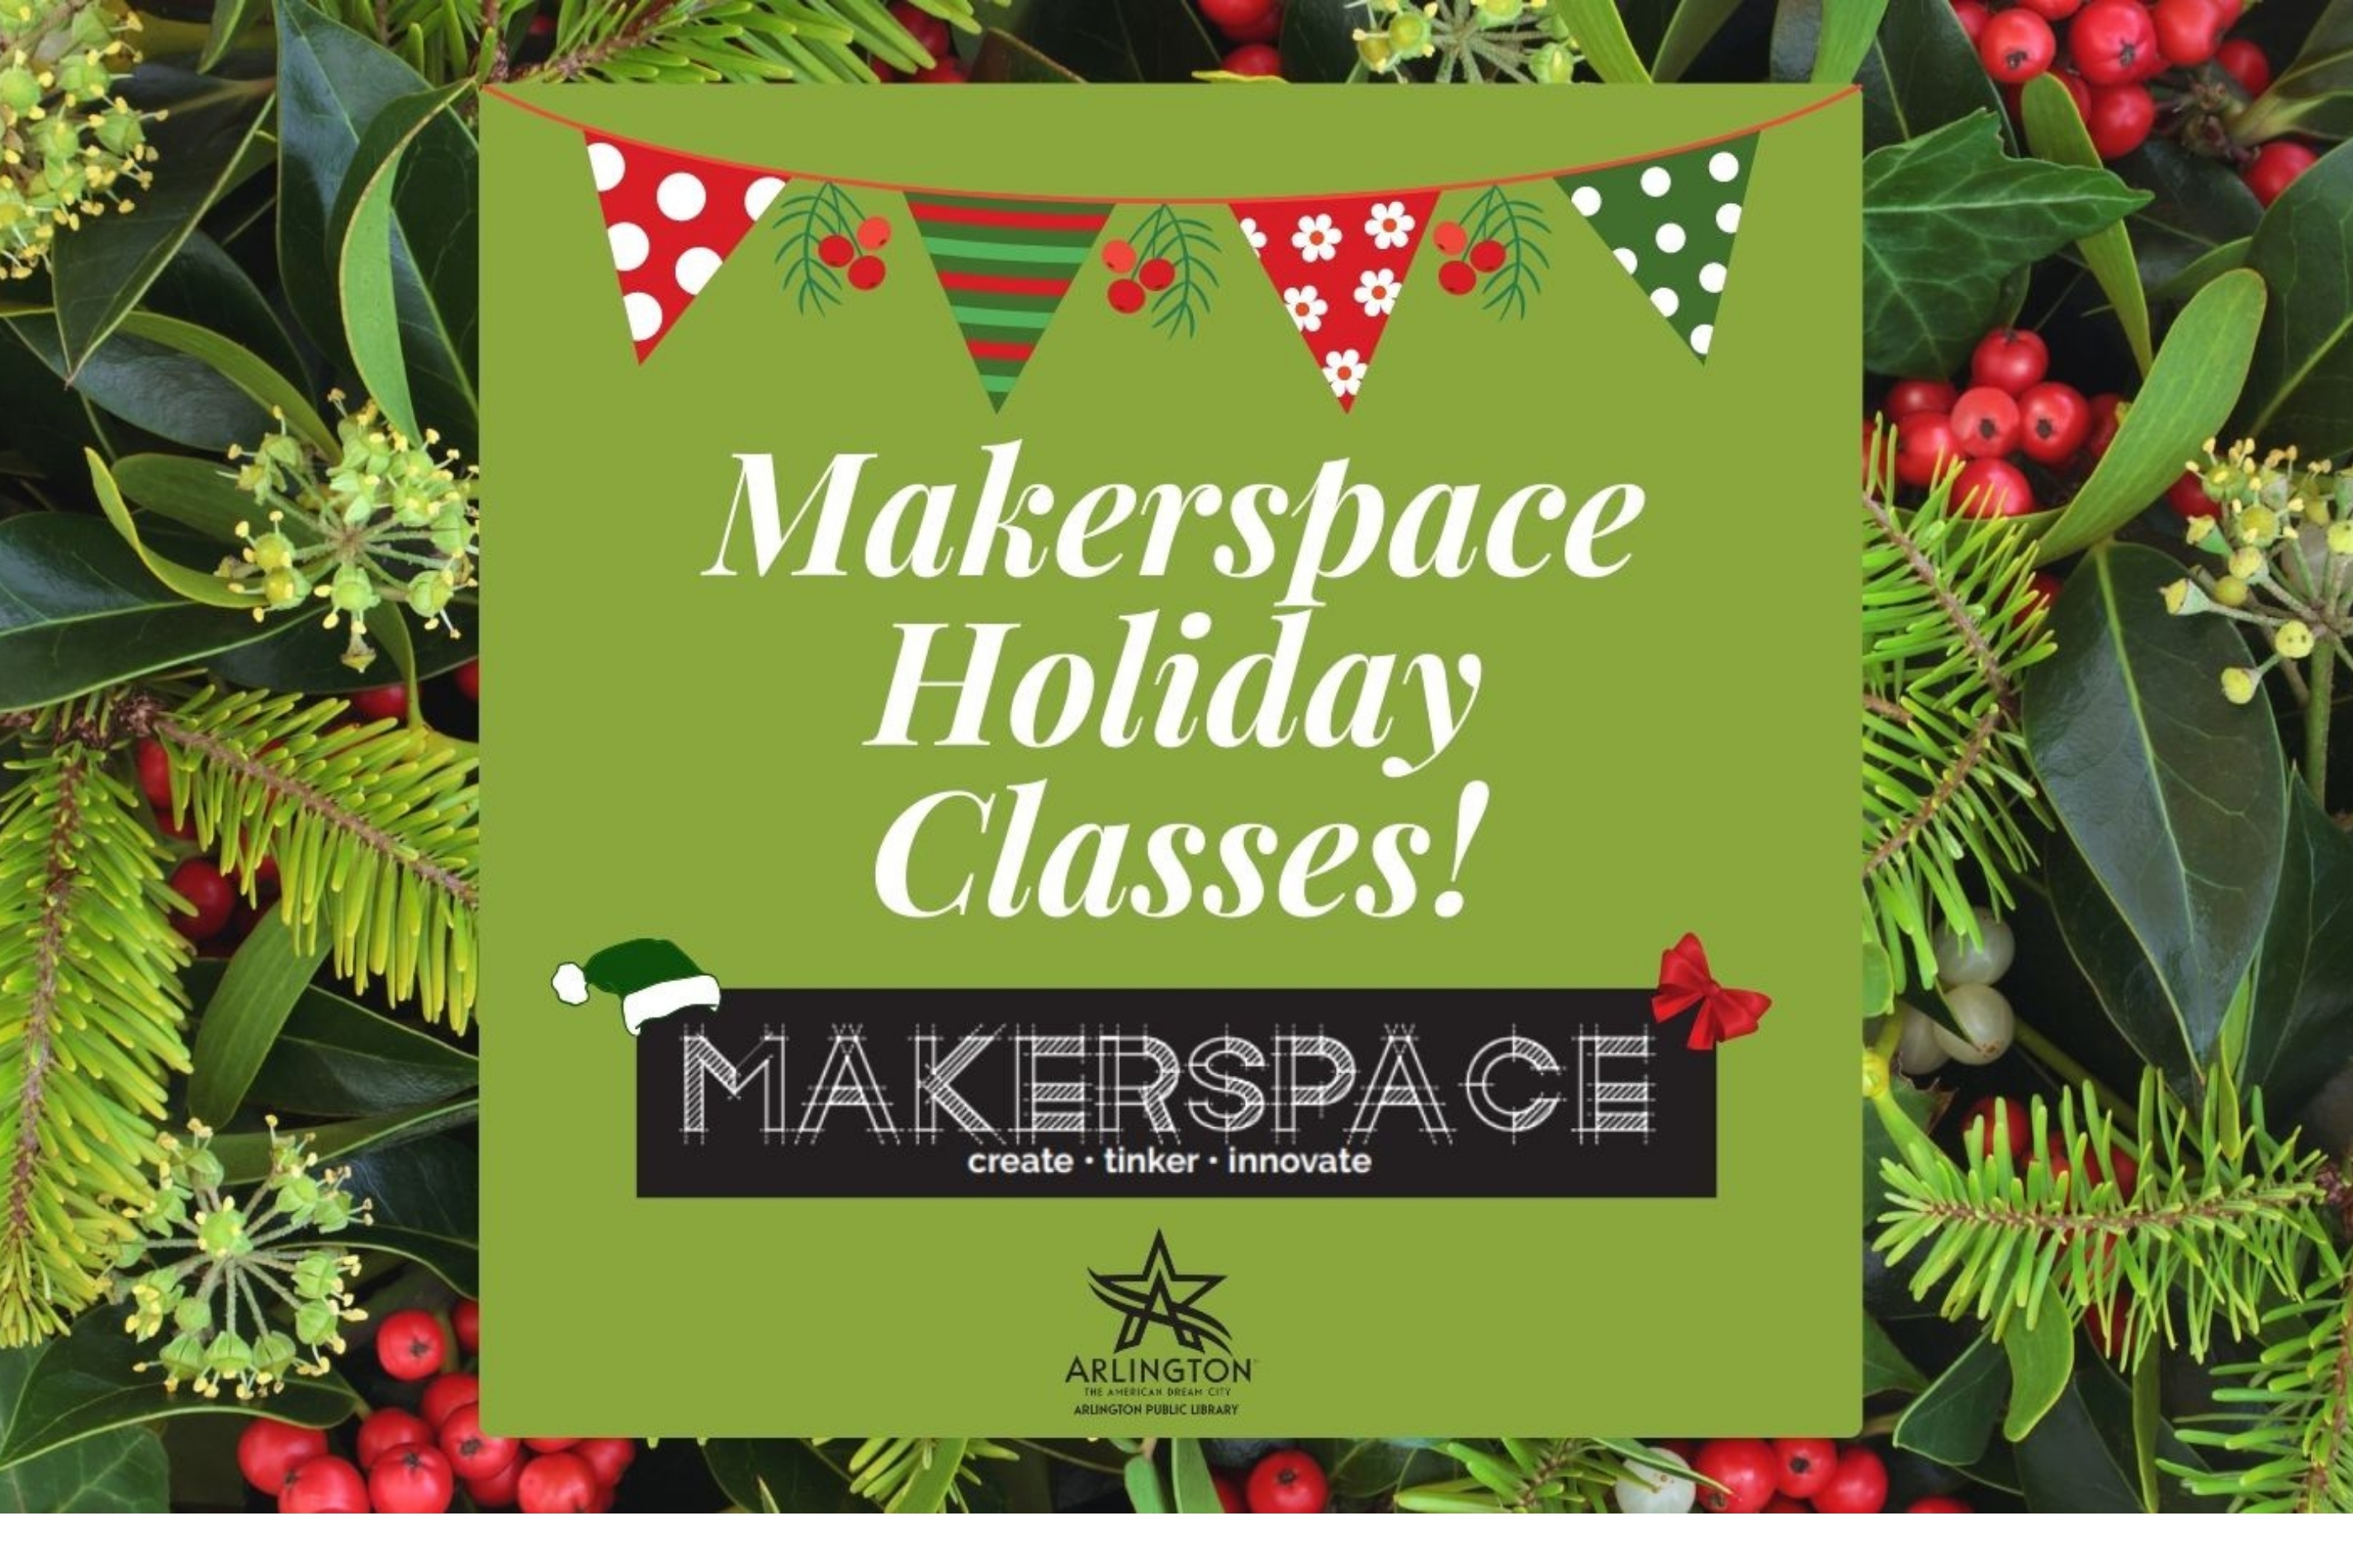 Makerspace Holiday Classes